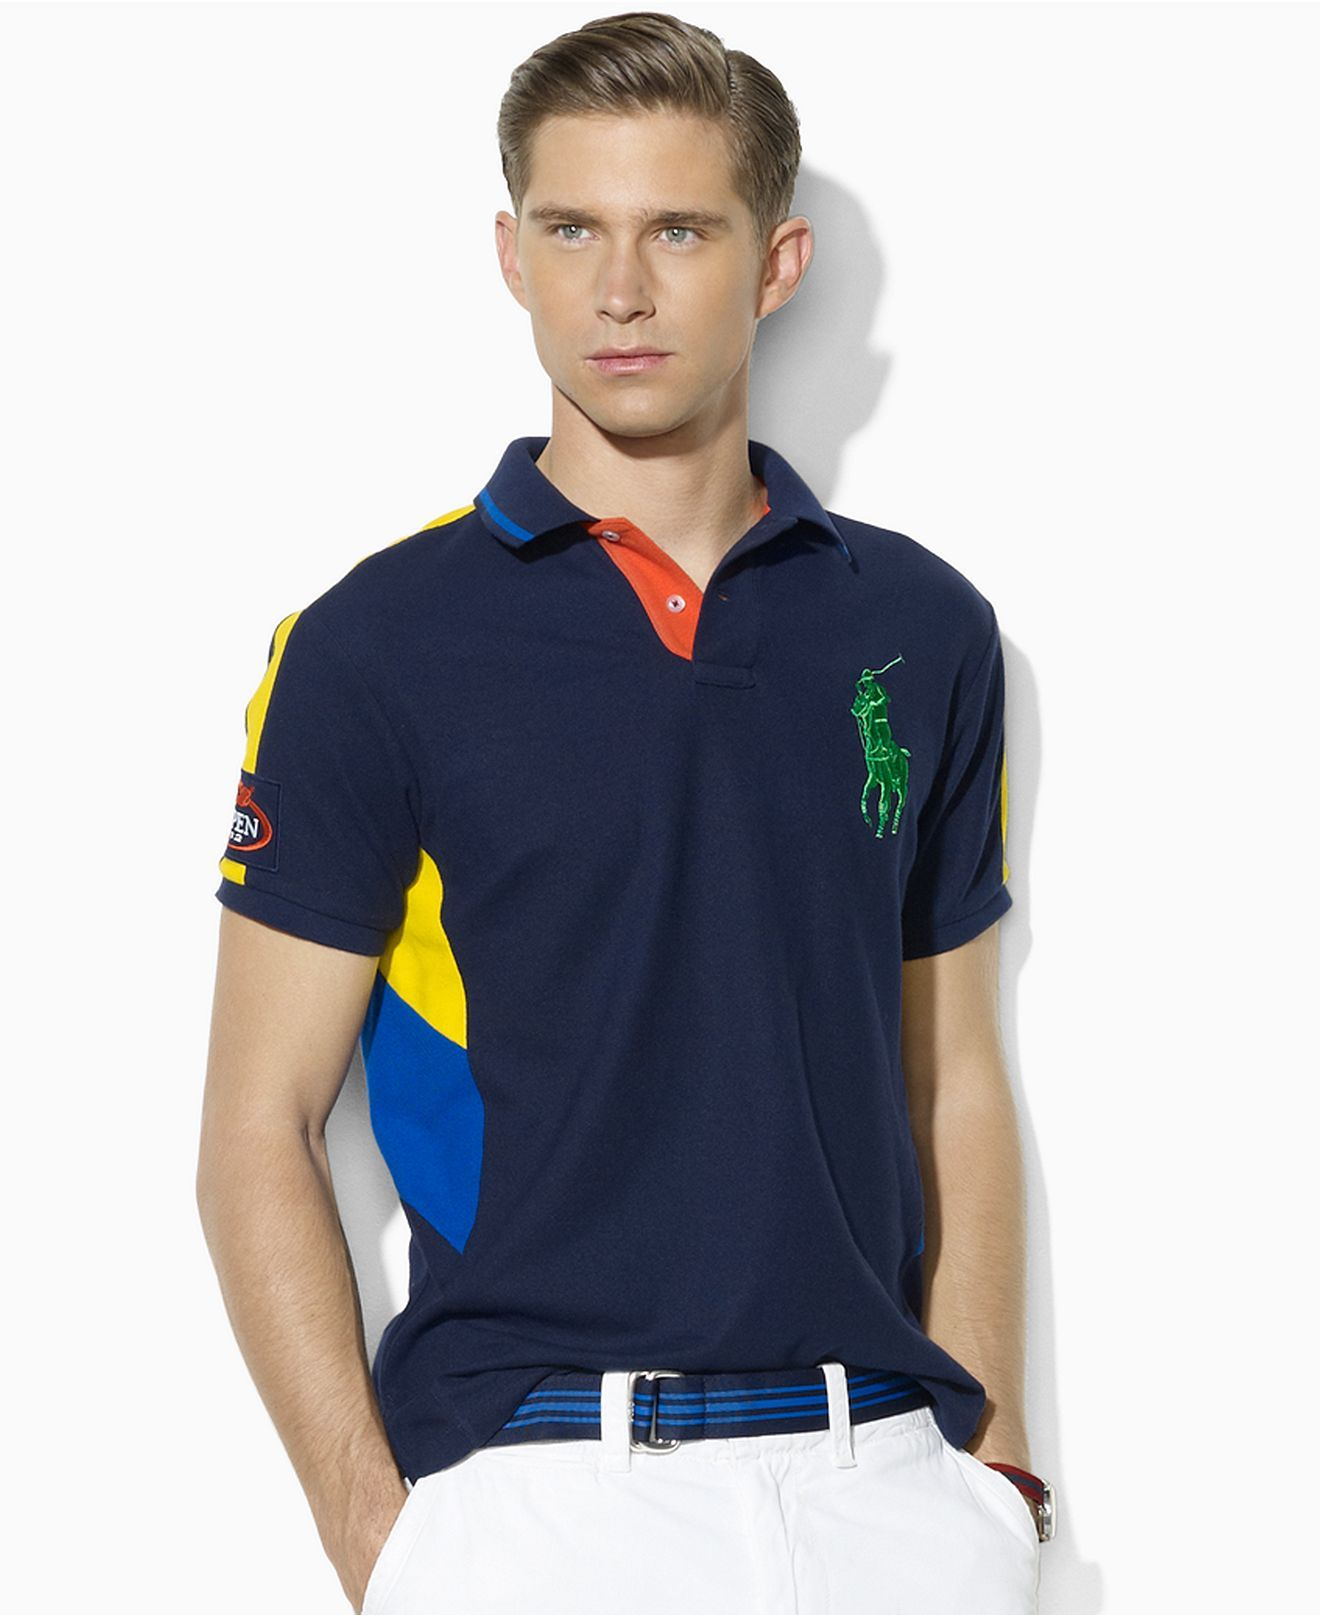 Polo Ralph Lauren Shirt, Limited Edition US Open Performance Ball Boy Polo  Shirt - Polos - Men - Macy's